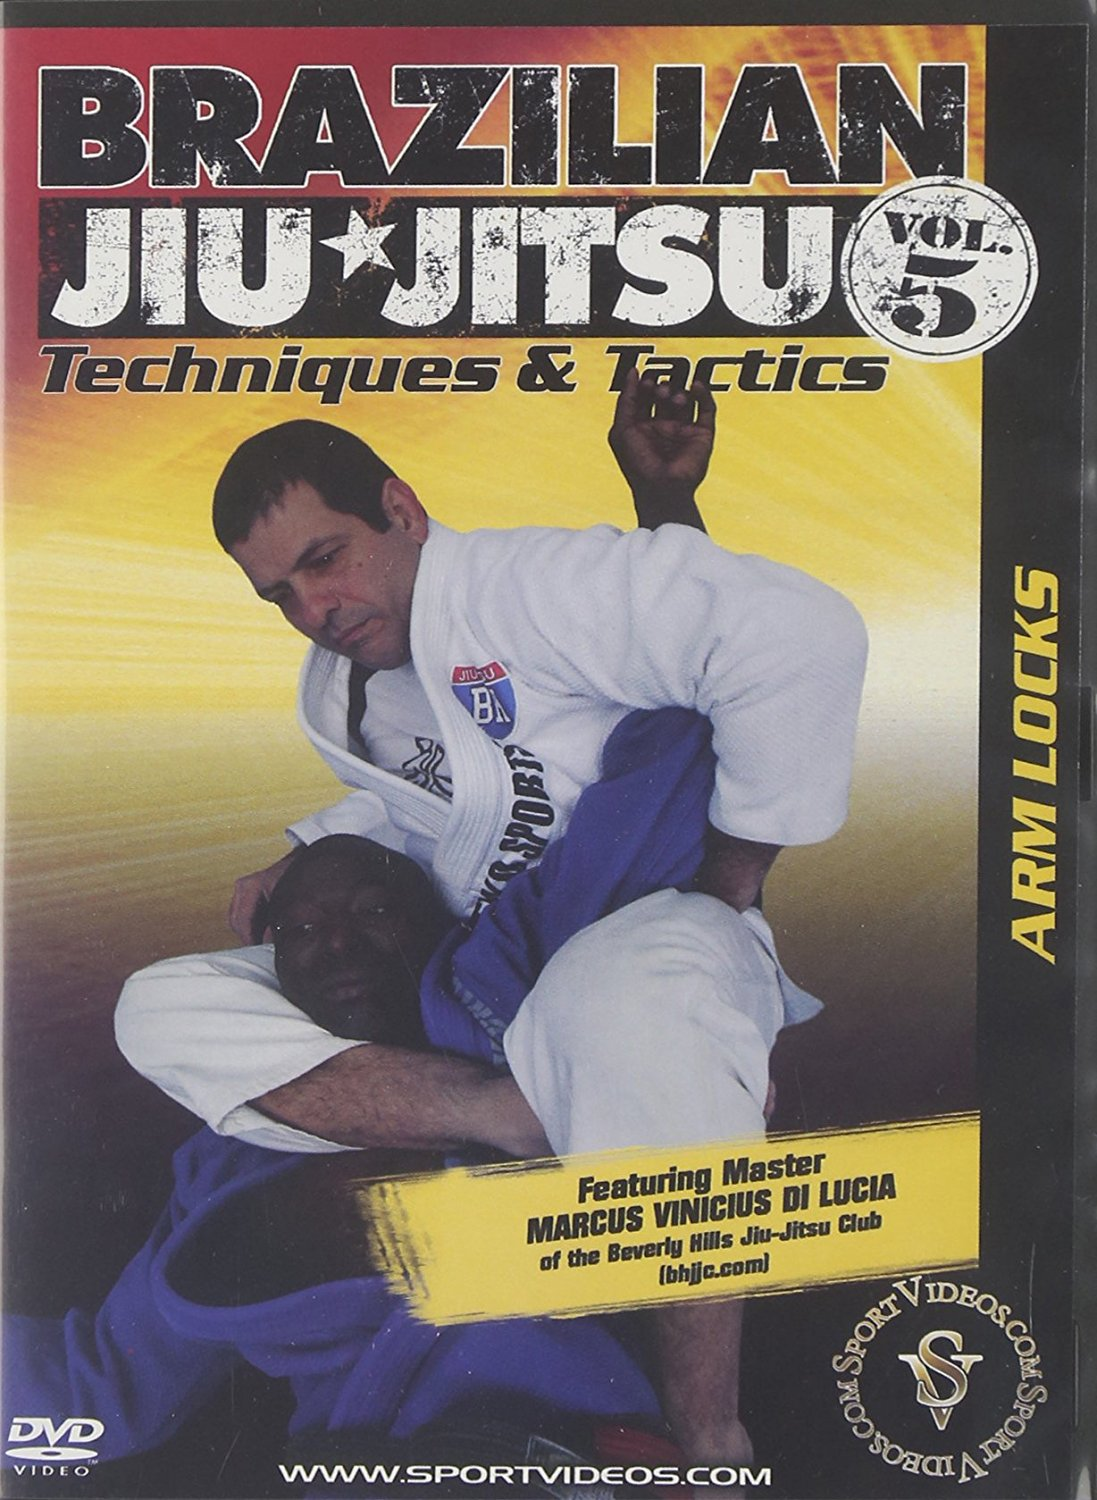 Brazilian Jiu-Jitsu Techniques and Tactics: Arm Locks DVD